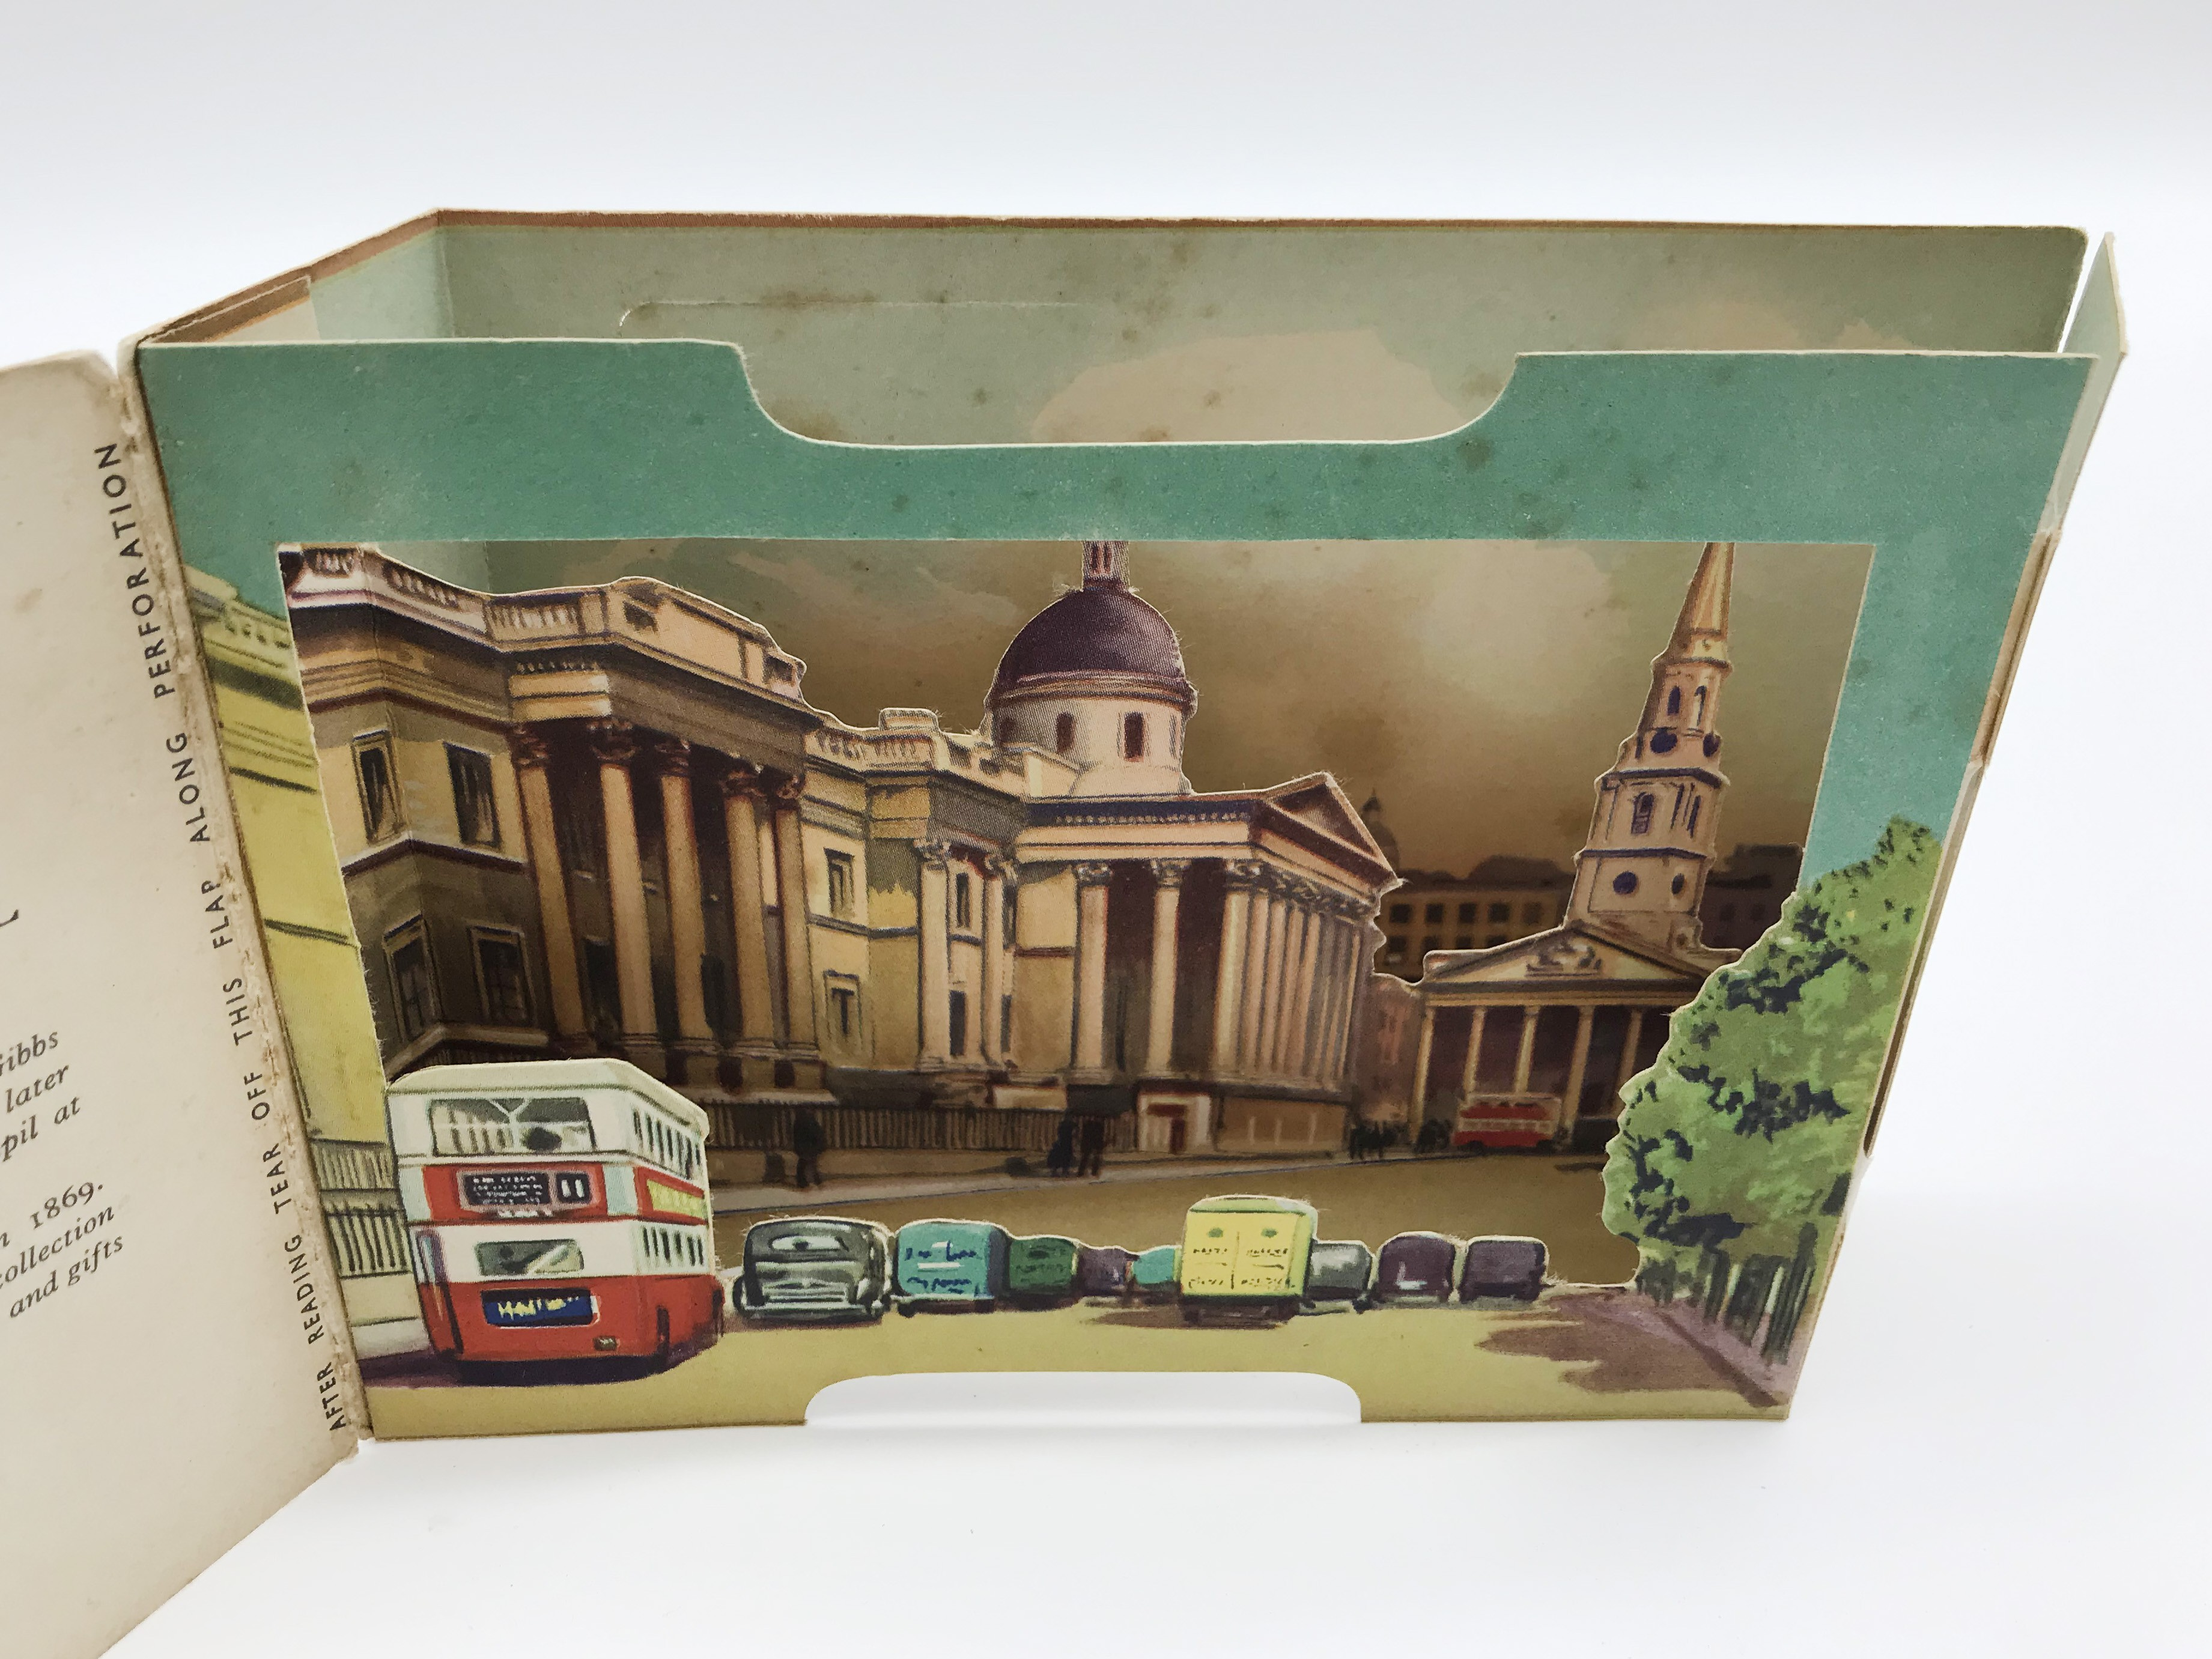 FIVE LONDON POSTCARDS - THE BRENT SERIES OF PANORAMIC VIEW CARDS - Image 5 of 13